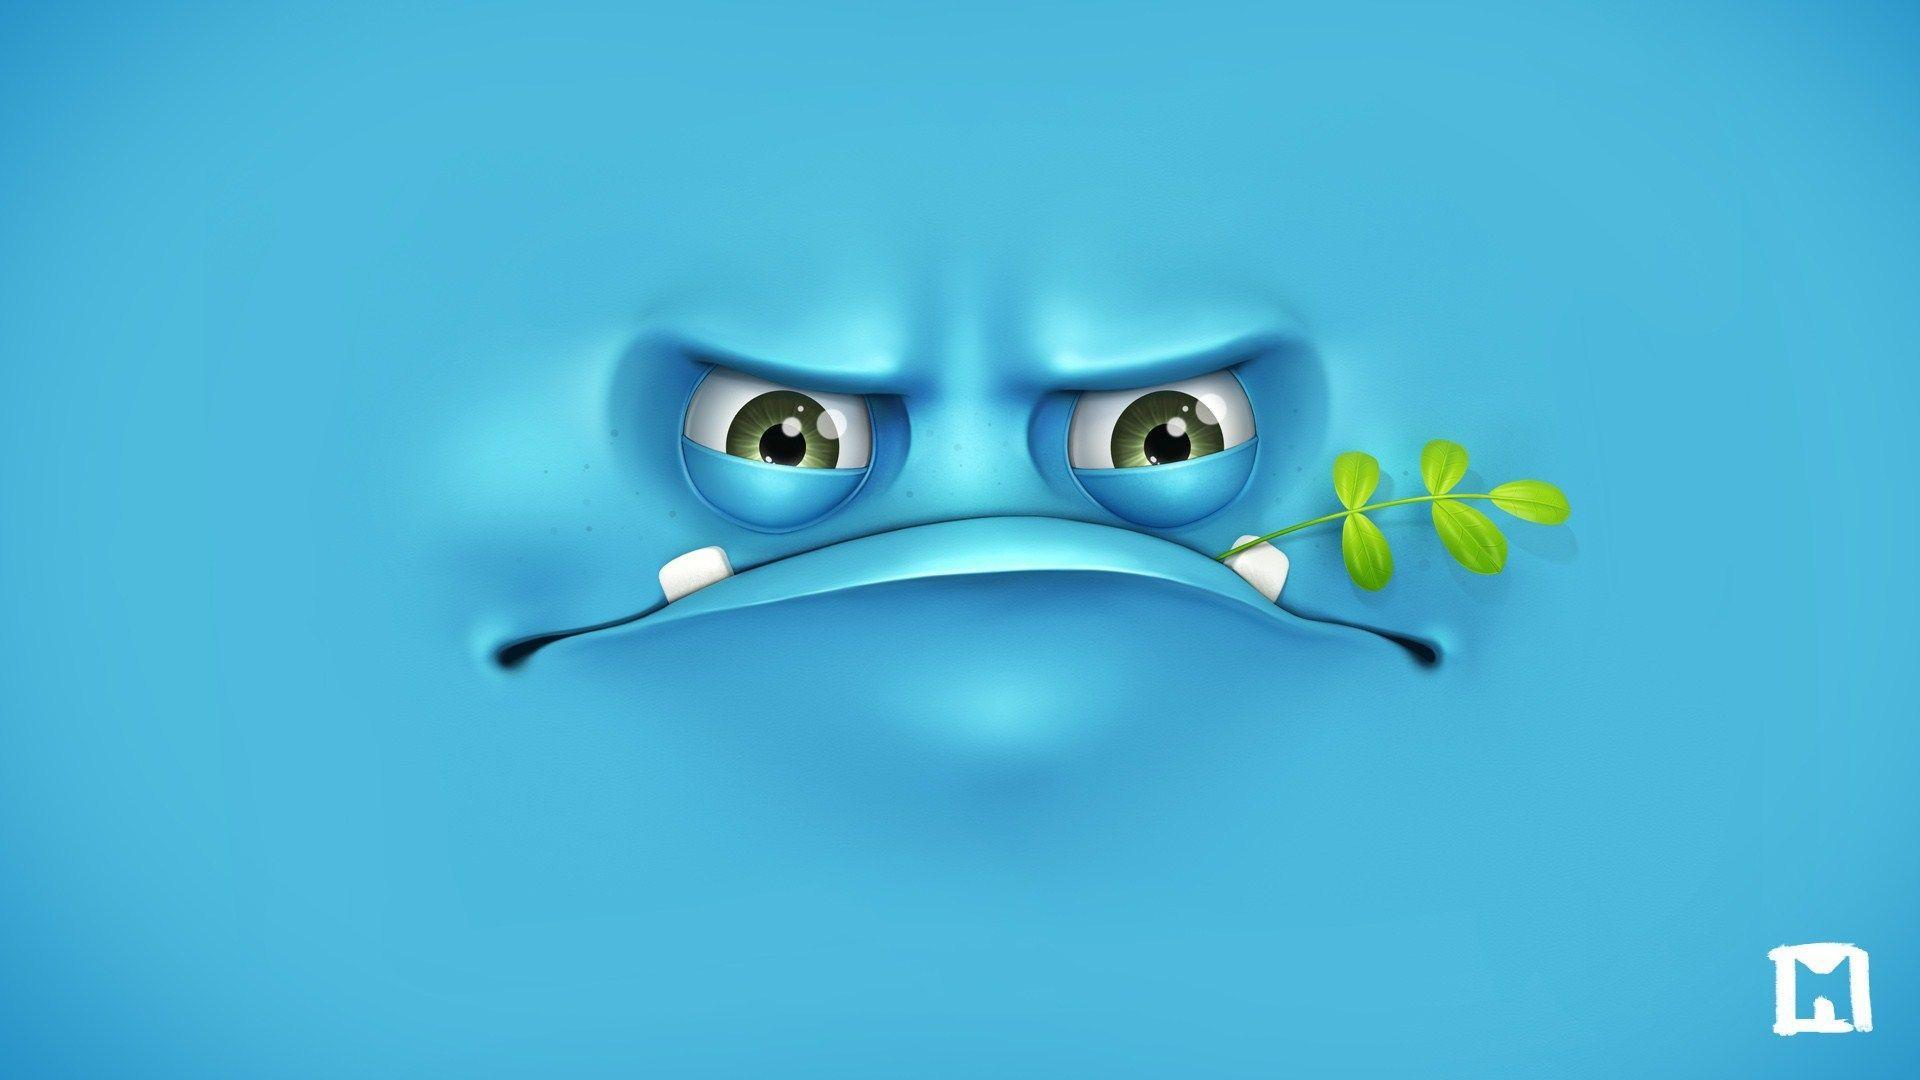 Funny Backgrounds Wallpapers